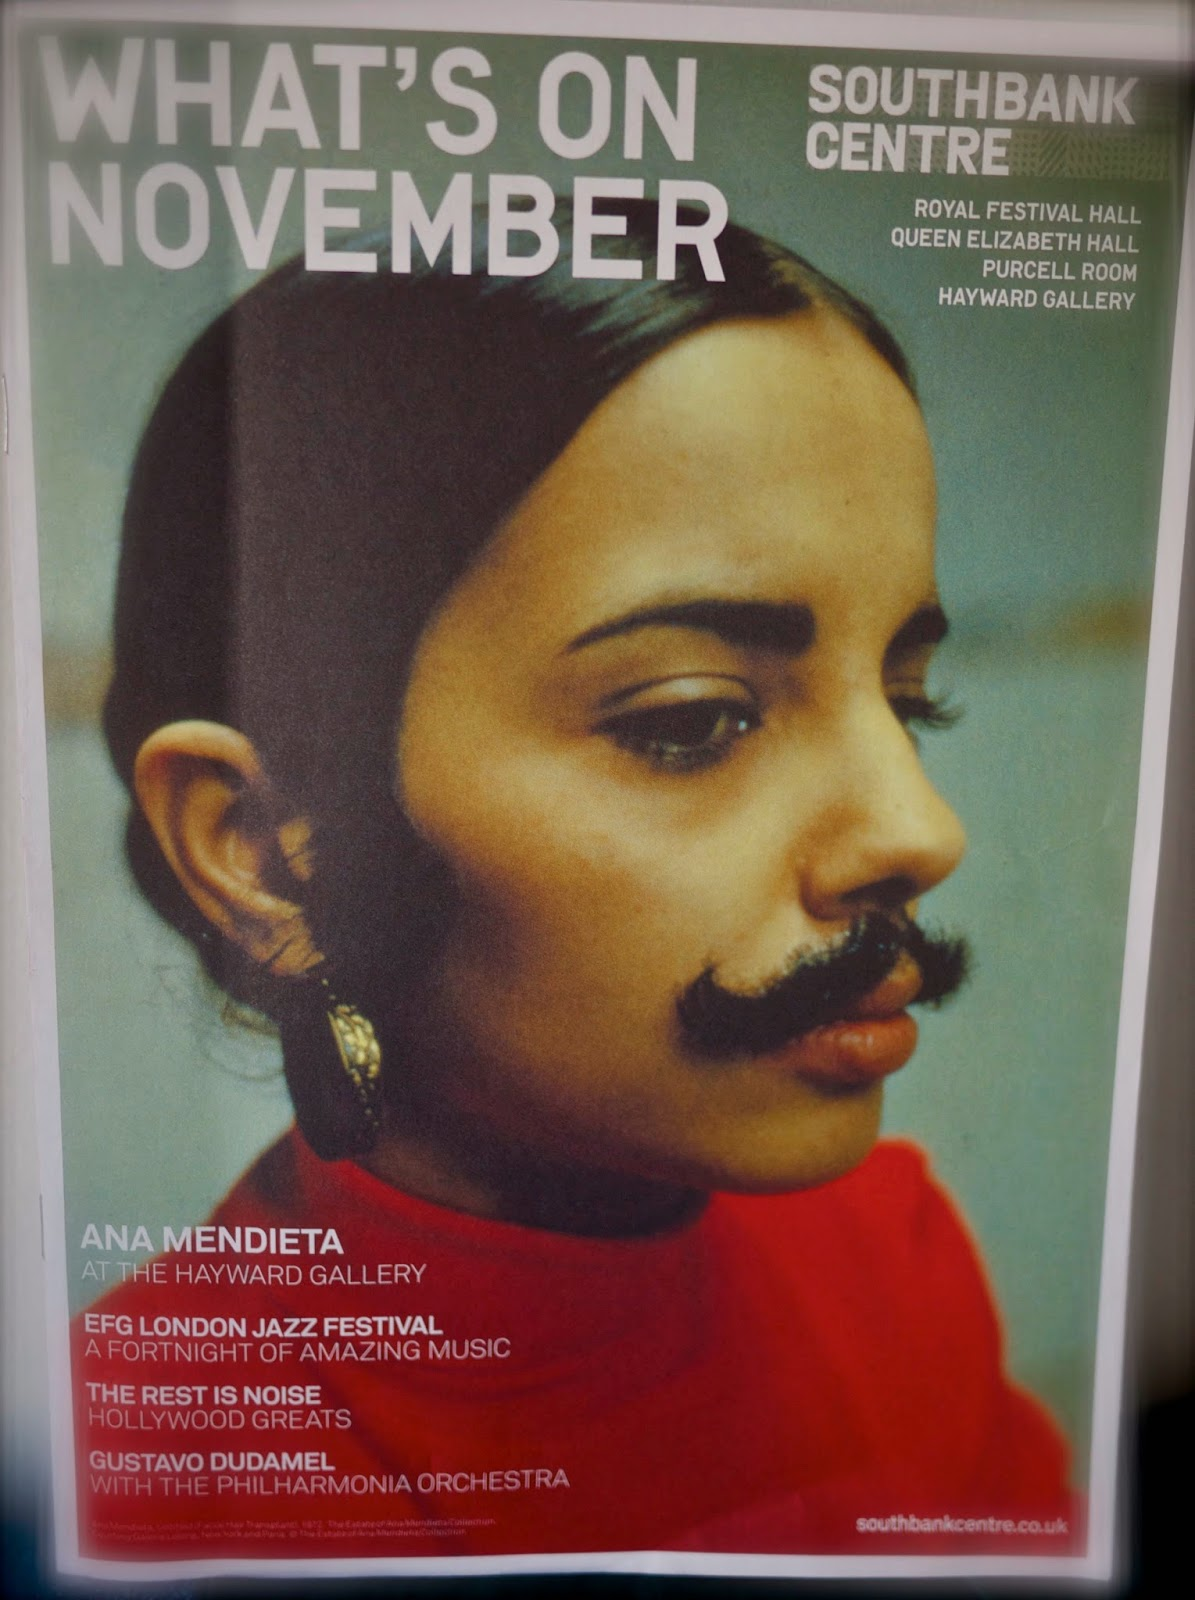 Cover of SBC's November 2013 programme devoted to Ana Mendieta, Cuban-American conceptual artist and pioneering photo self-portraitist